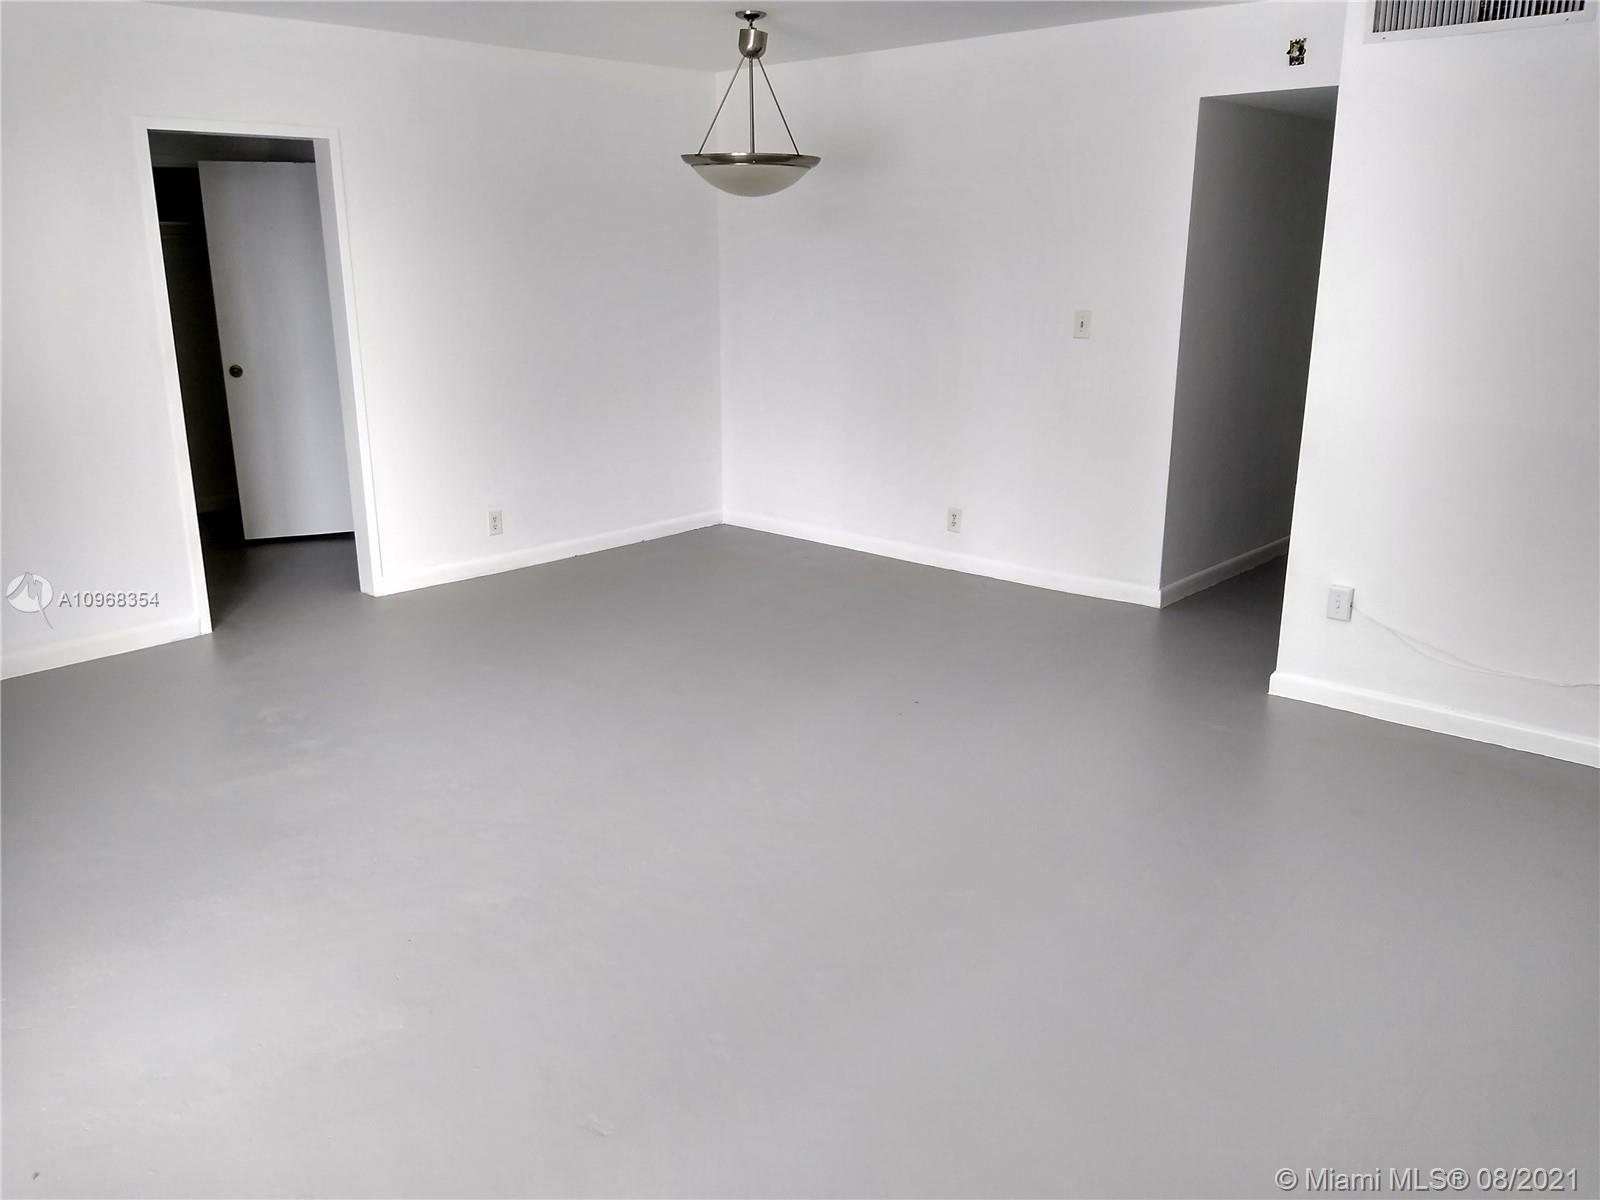 Large 663 sq foot studio at Mirador South Tower. Included in lease price are all amenities- pool, gym, high speed cable & internet. Valet or monthly parking available starting at $65. Second floor, No balcony faces East. Carpet flooring.